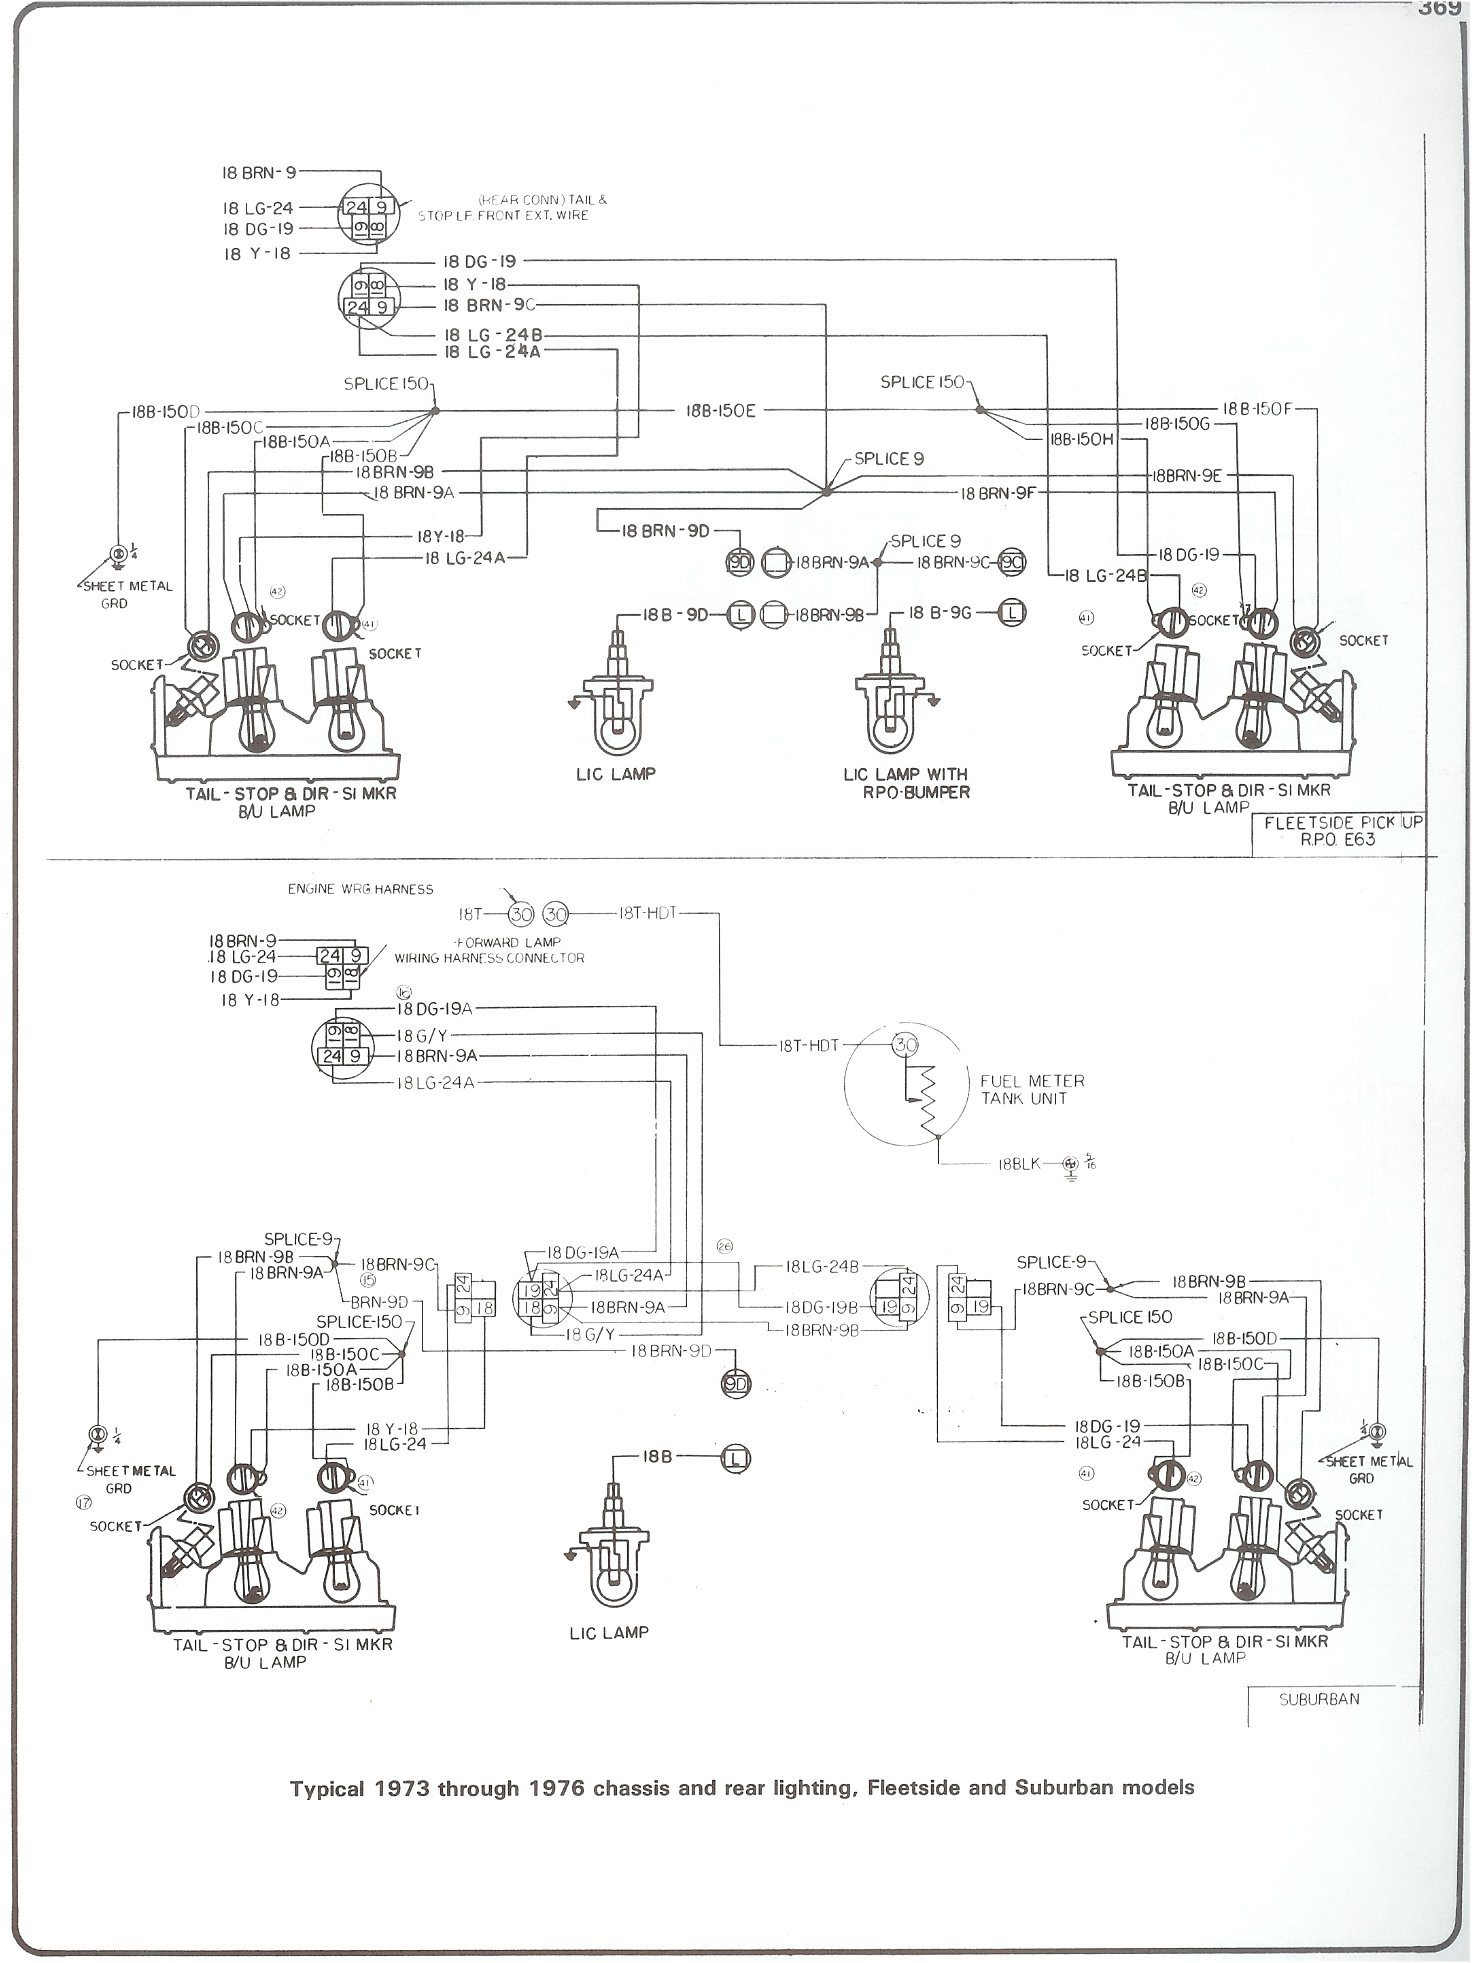 73 76_chass_rr_light_fleet_burb complete 73 87 wiring diagrams gmc truck wiring diagrams at bayanpartner.co